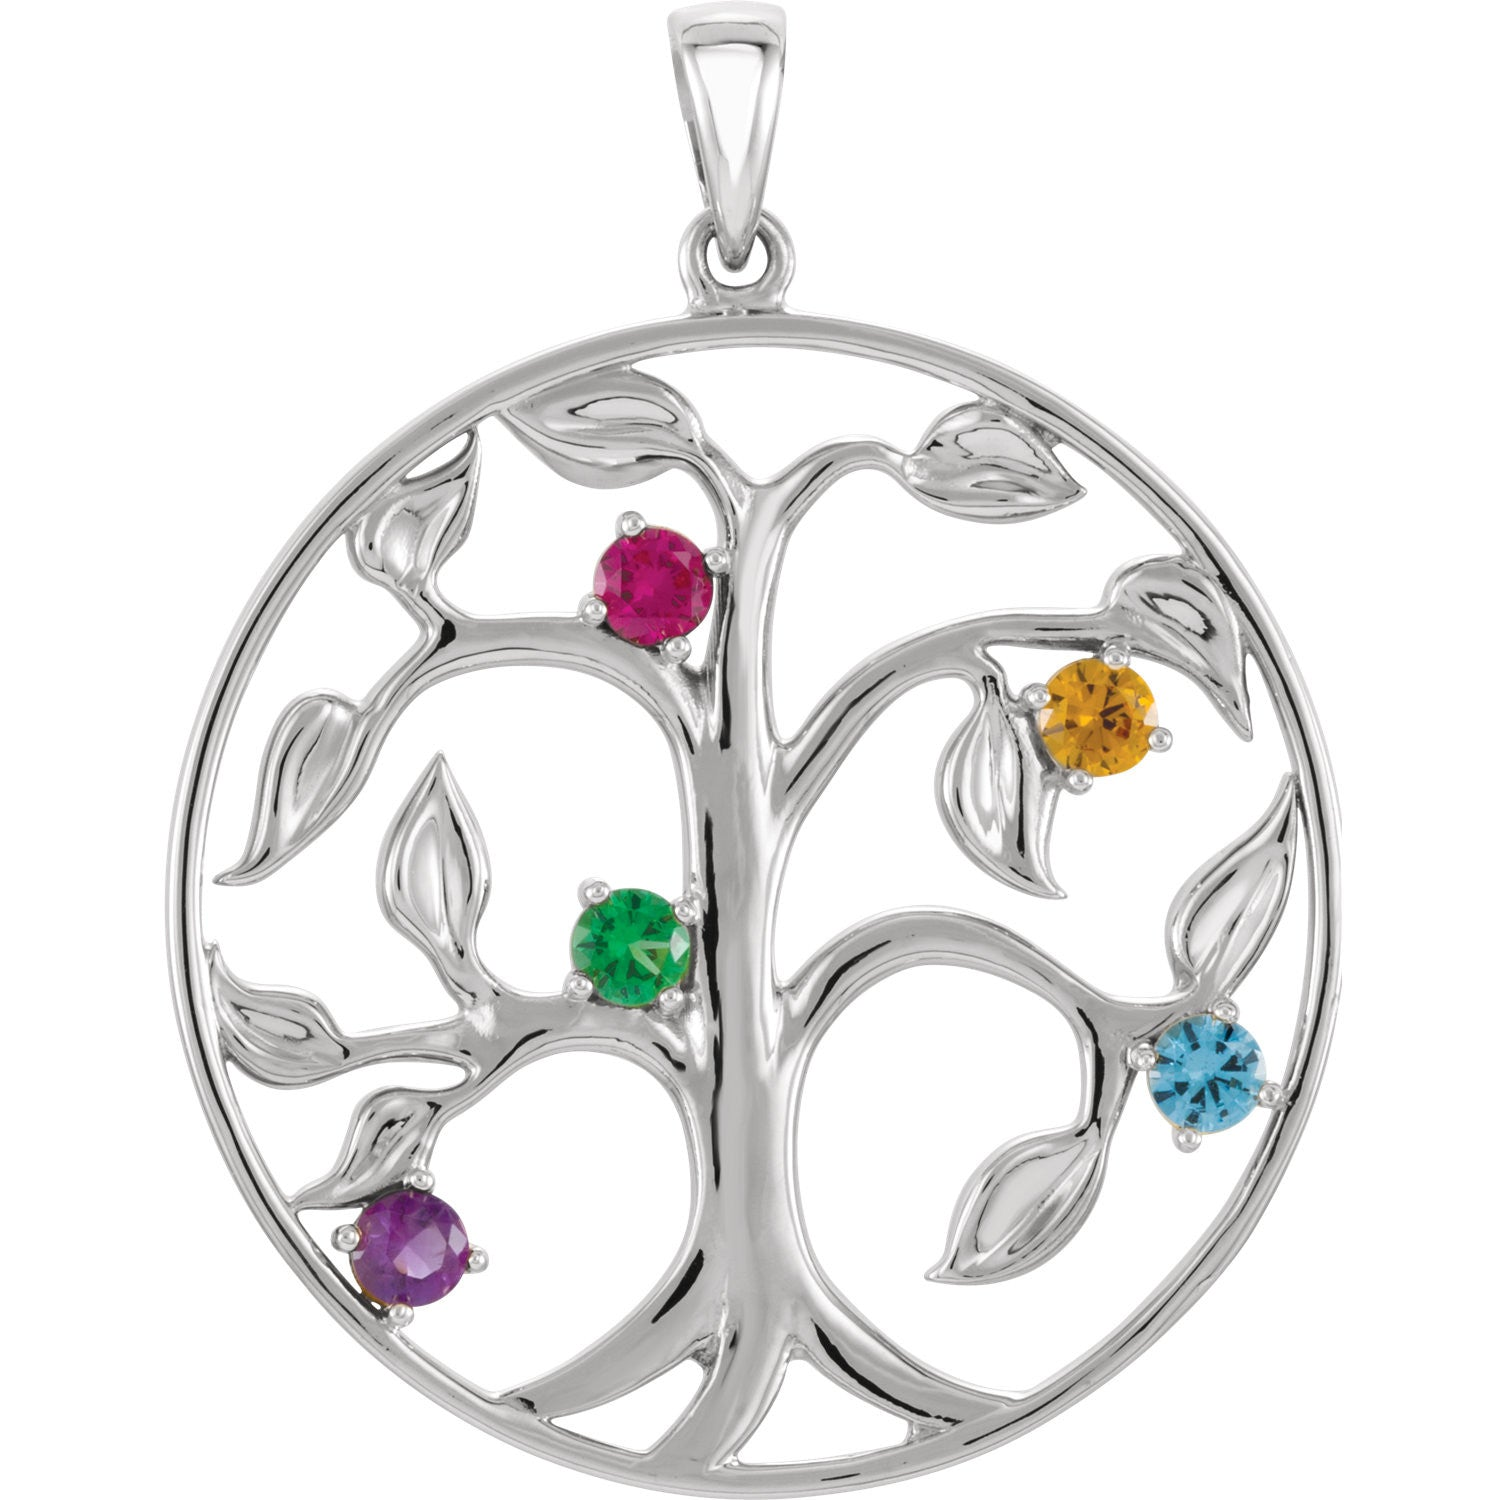 jewelry tree small products original child jew of life family birthstone mother pendant